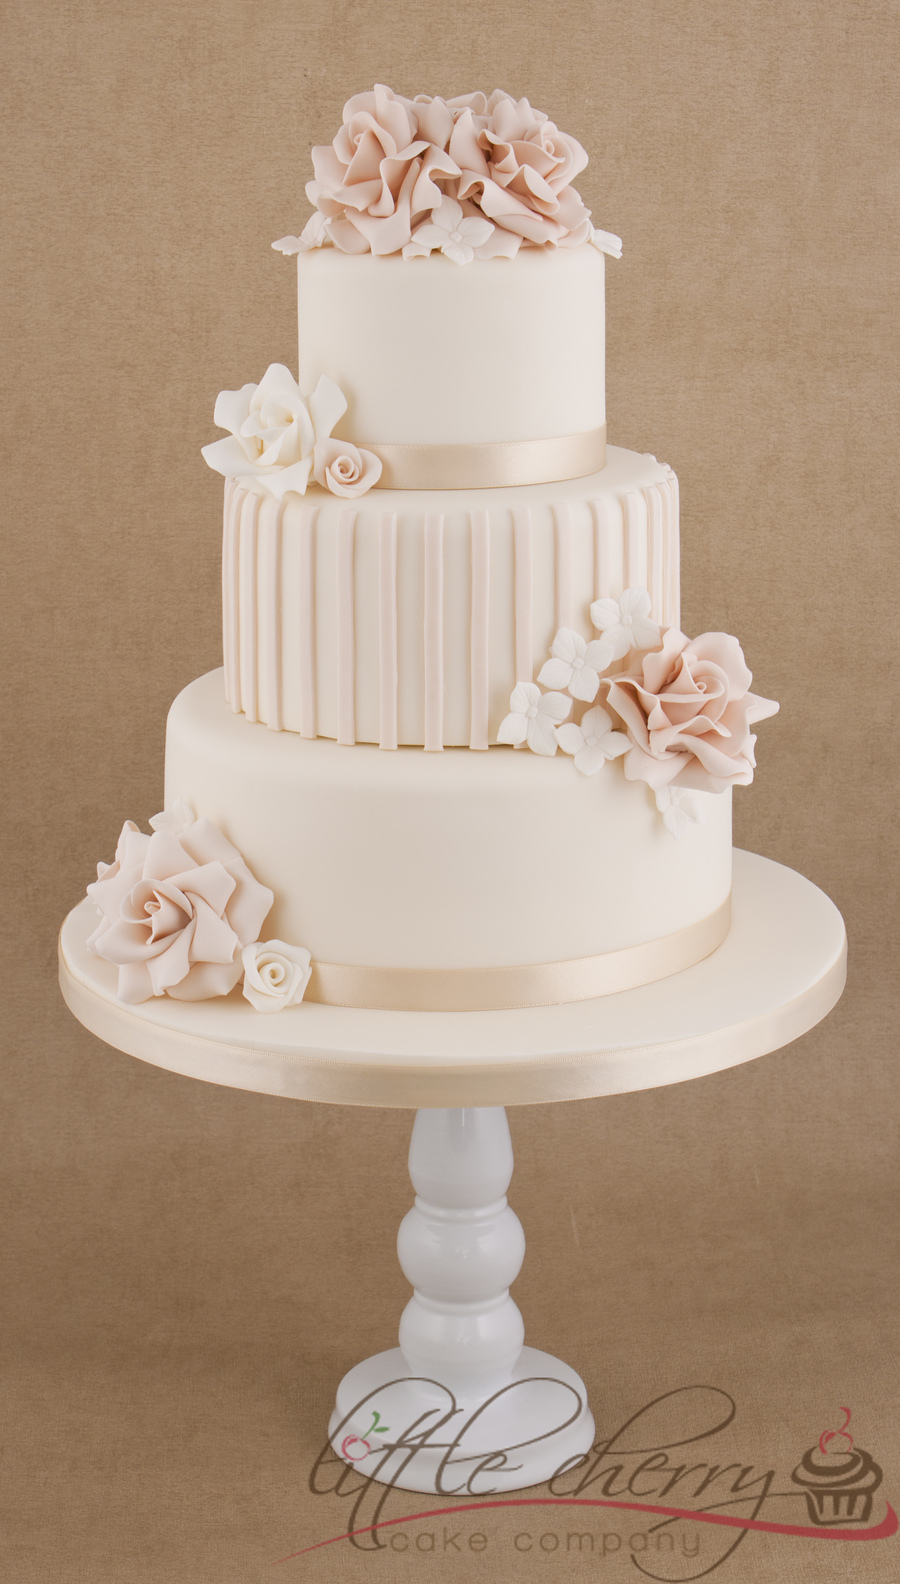 Roses And Stripes 3 Tier Wedding Cake CakeCentralcom - 3 Tier Wedding Cakes